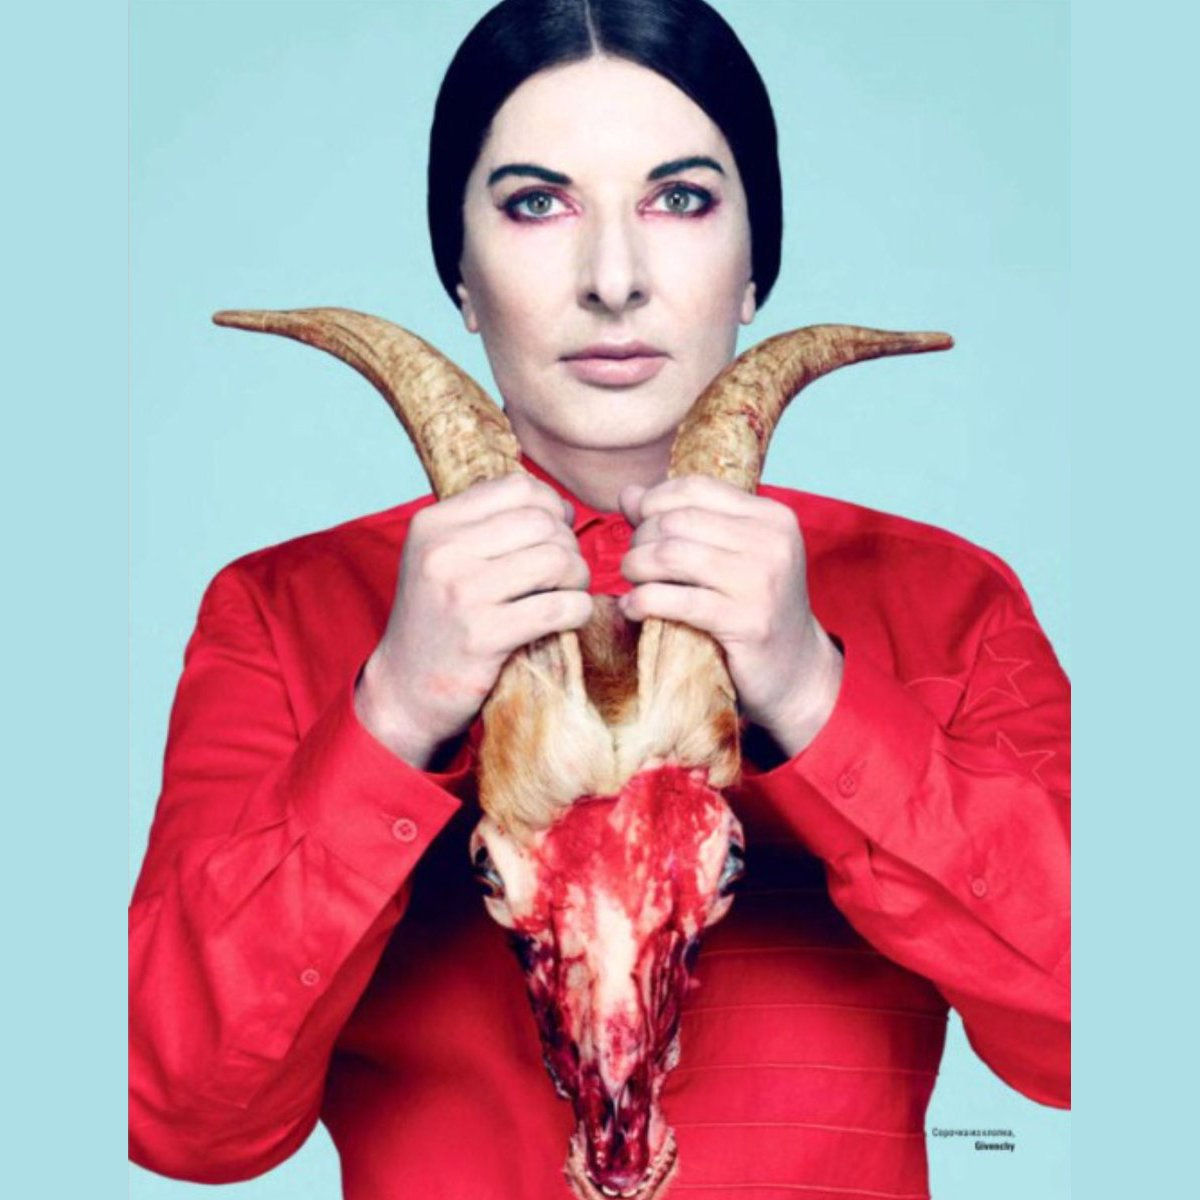 There's Experimental Art. Then there's Satanism. [re Marina Abramovic]